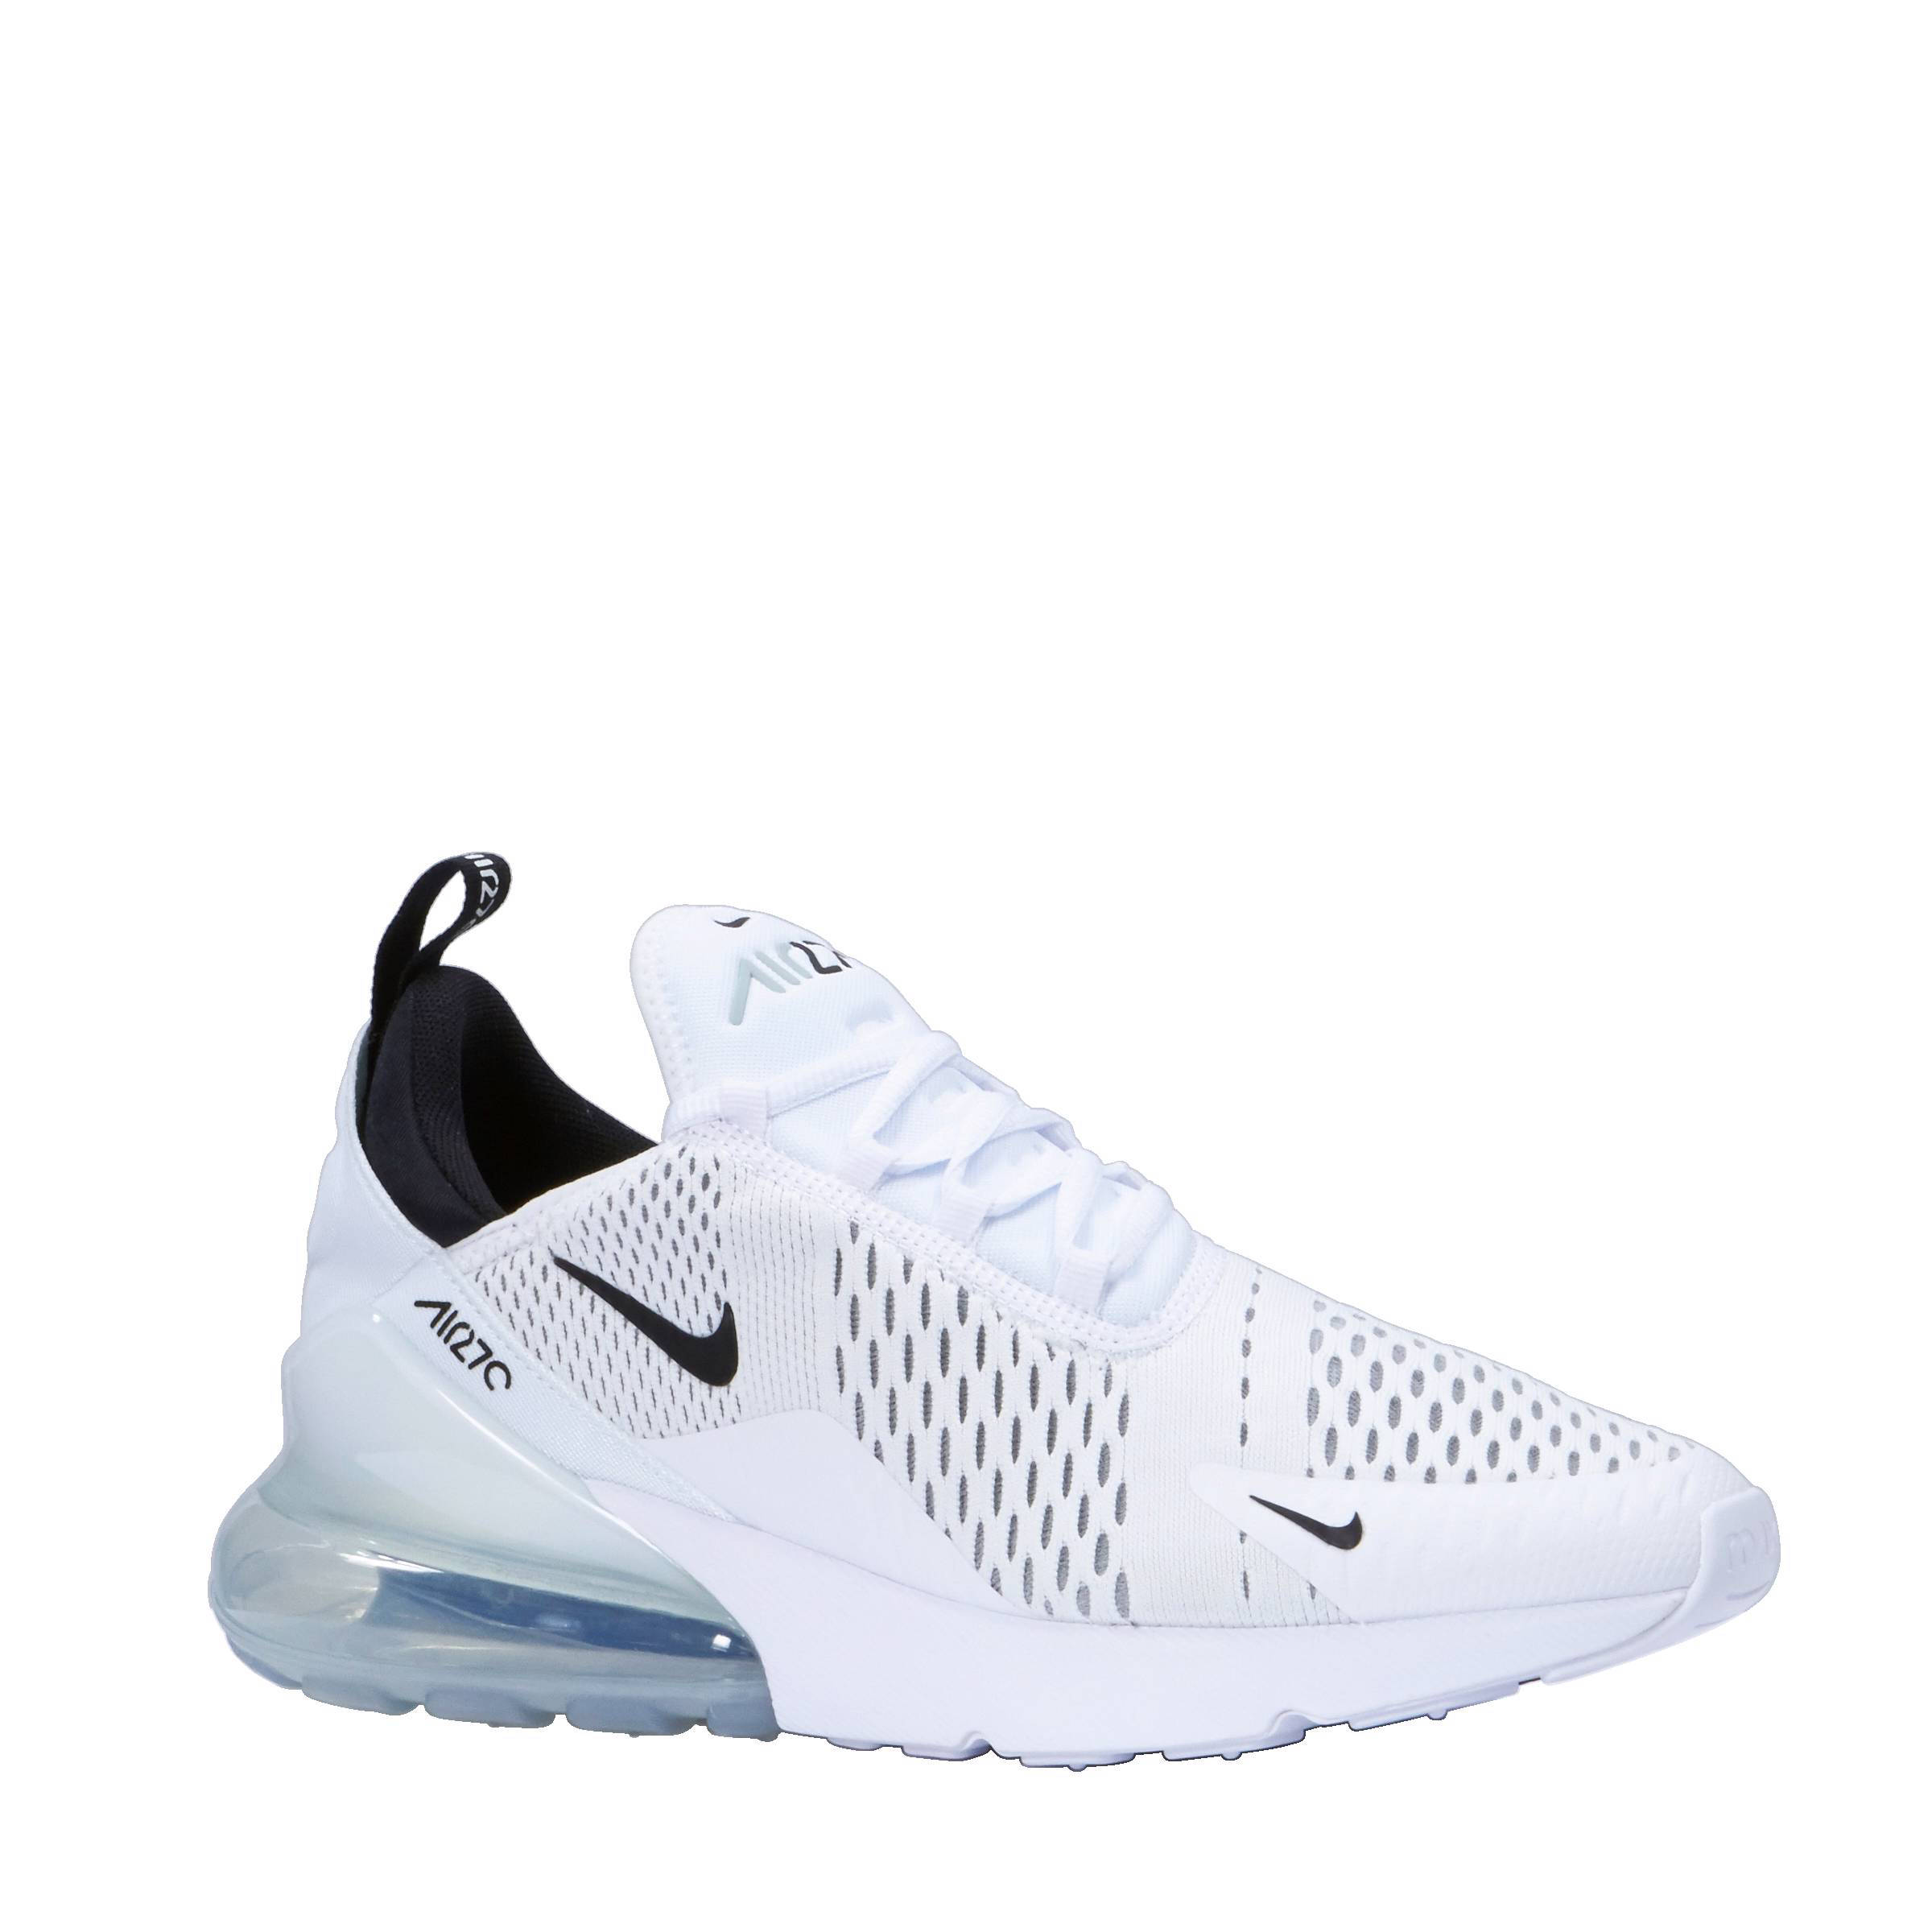 Nike Air Max 270 maat 23 | Dames & heren | Sneakerbaron NL